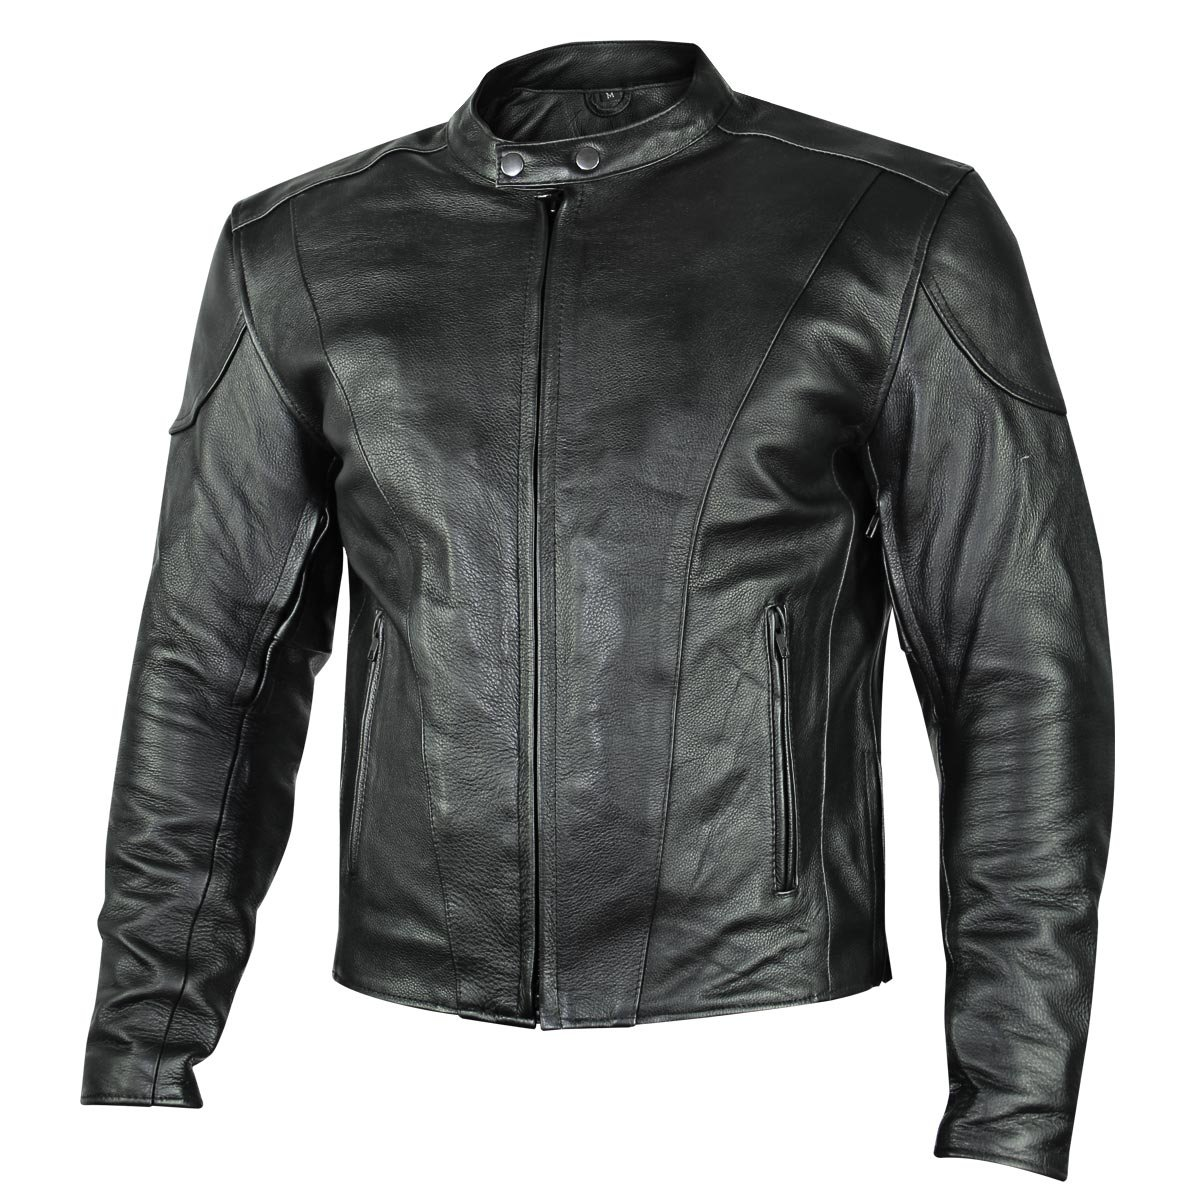 Xelement B7209 Renegade Mens Black Leather Motorcycle Jacket - Small